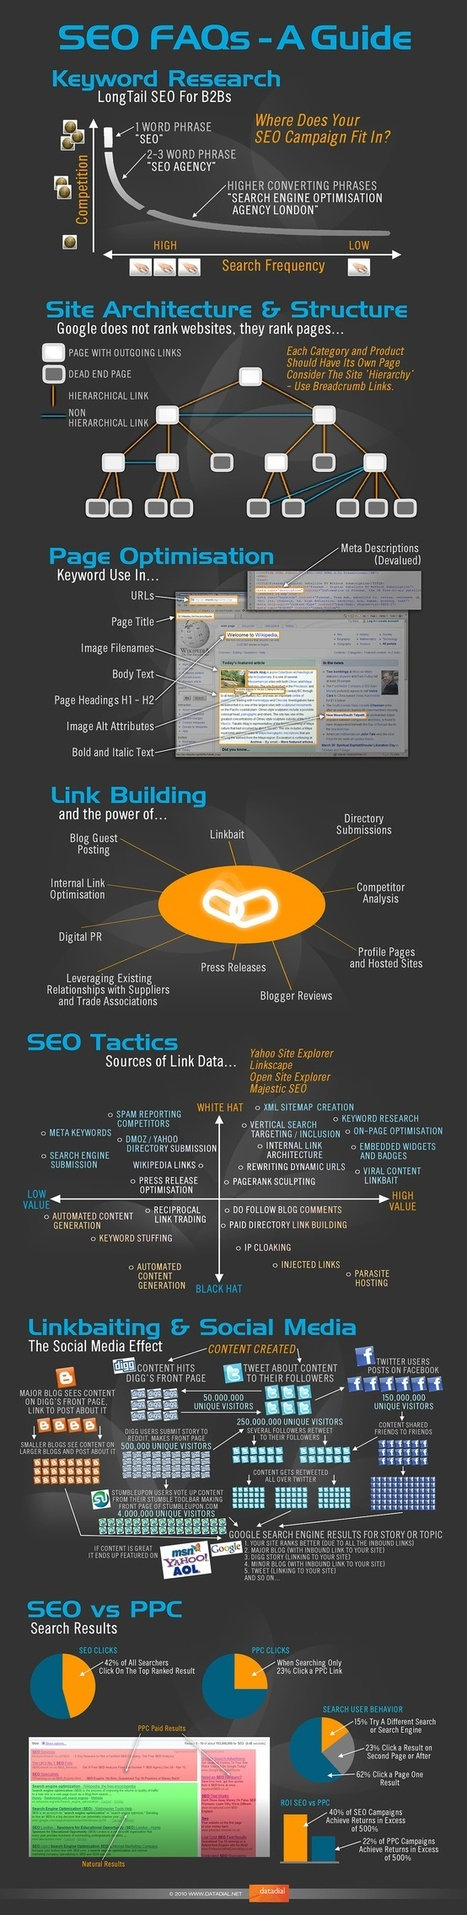 SEO FAQ's Guide | Wigisocial | How to improve your website | Scoop.it